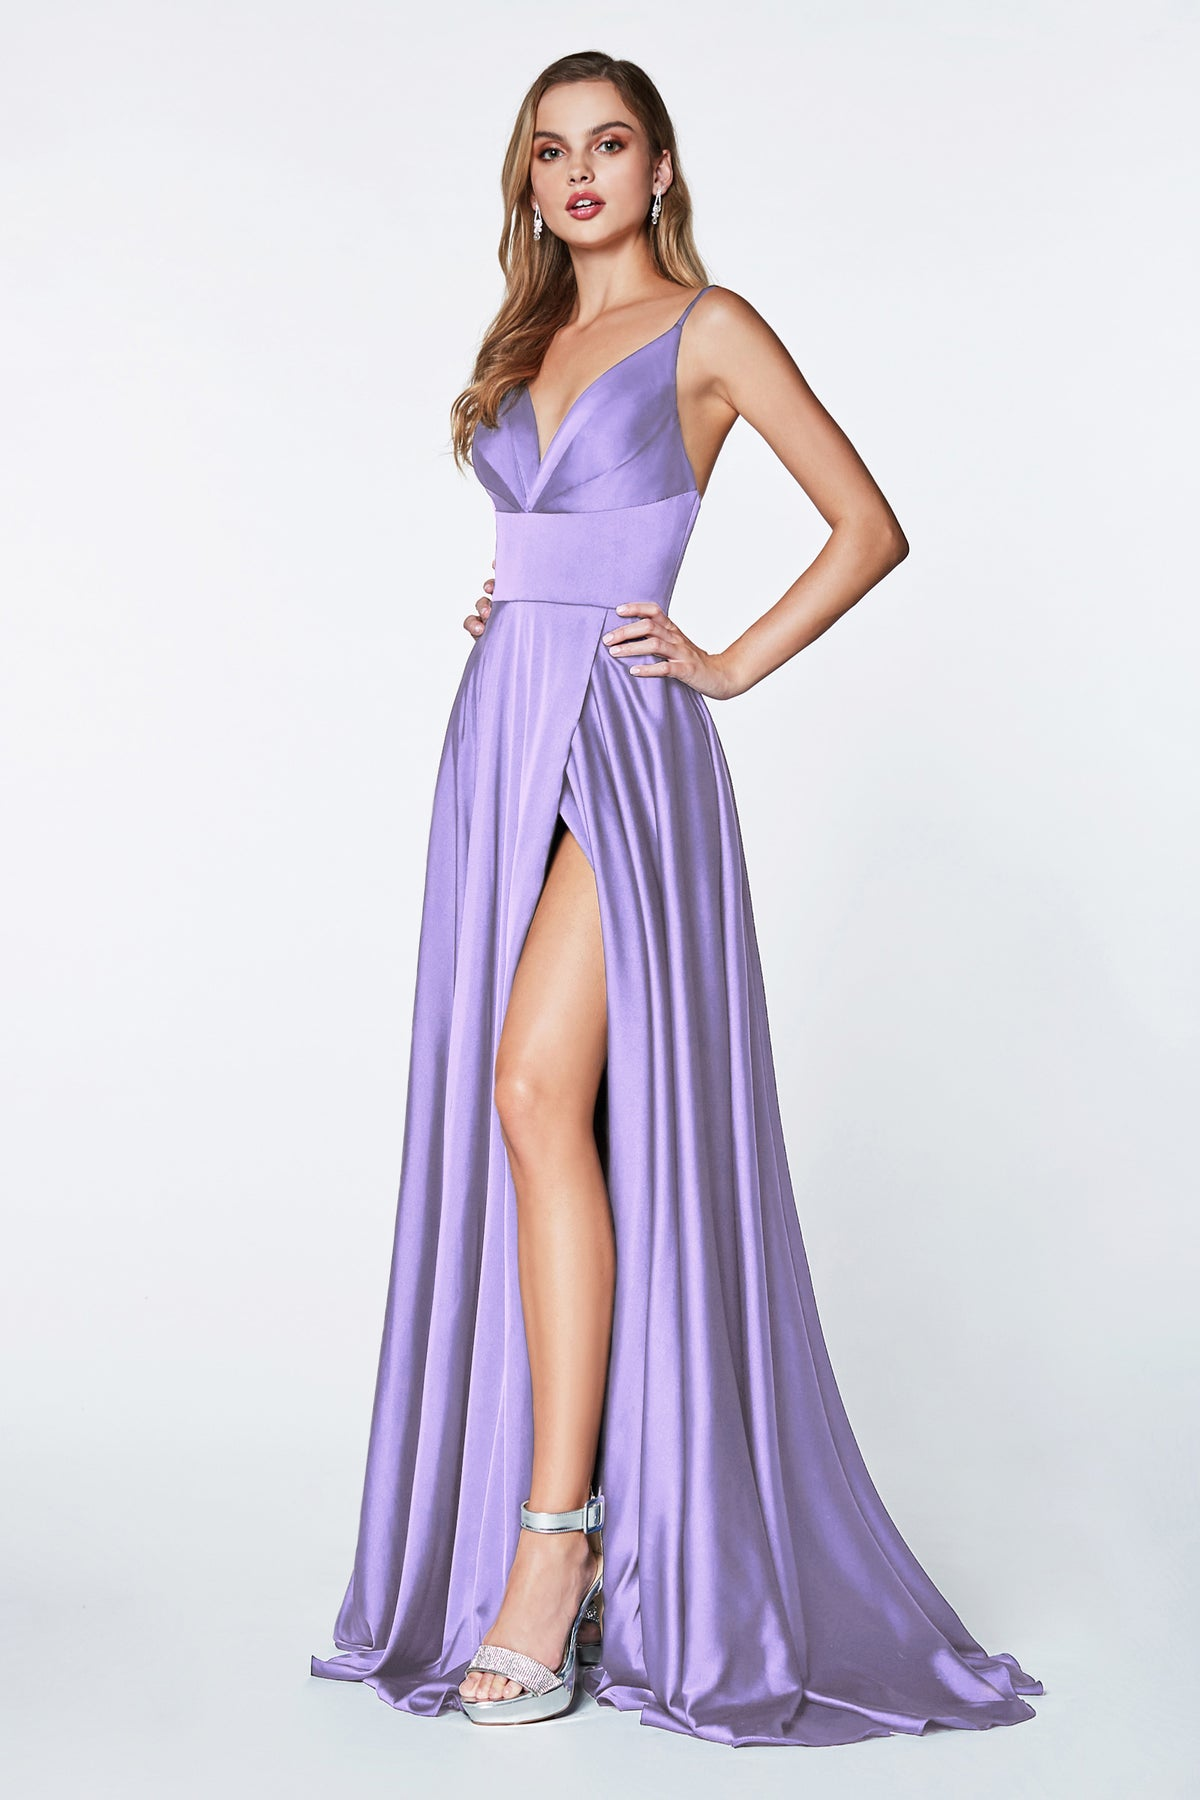 lavender purple satin prom dress